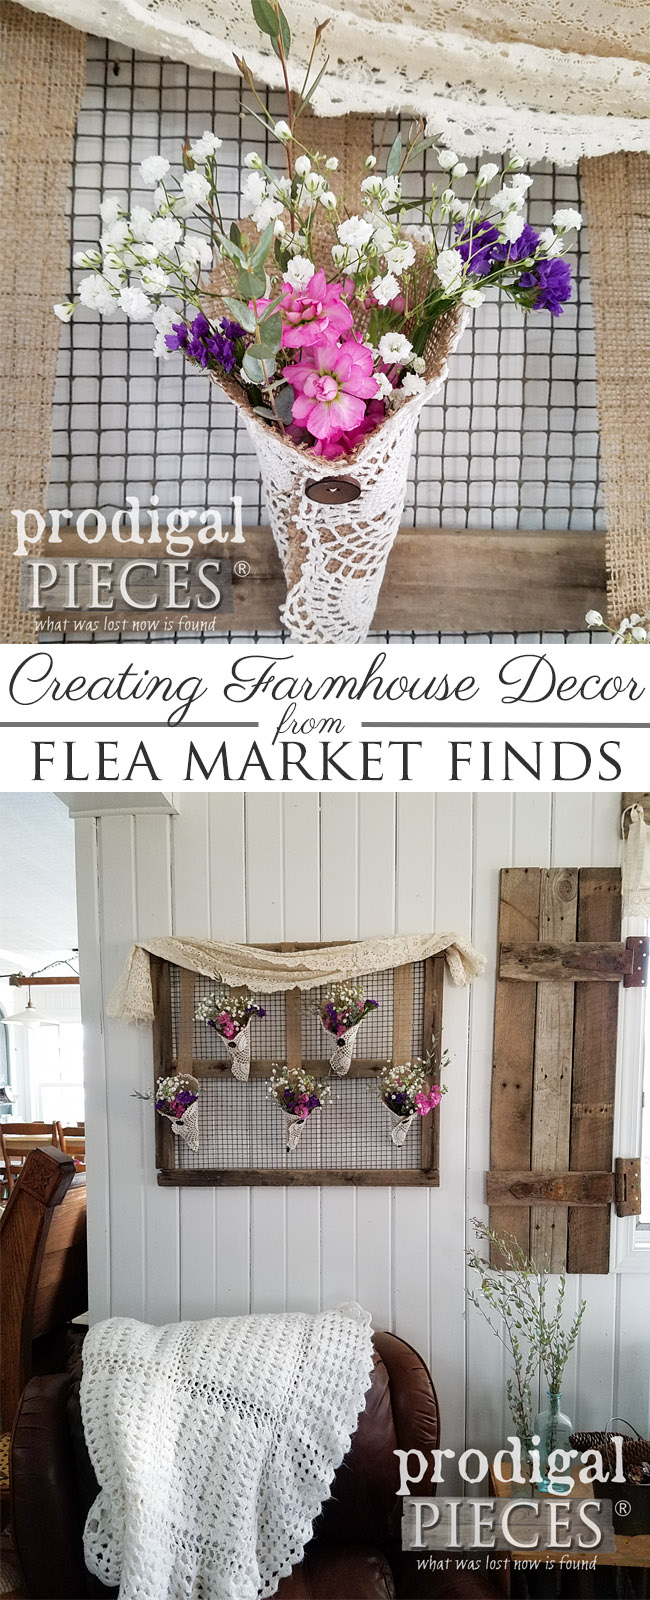 Keep it simple and DIY your own rustic farmhouse wall art from flea market finds. Get the details here at Prodigal Pieces | prodigalpieces.com